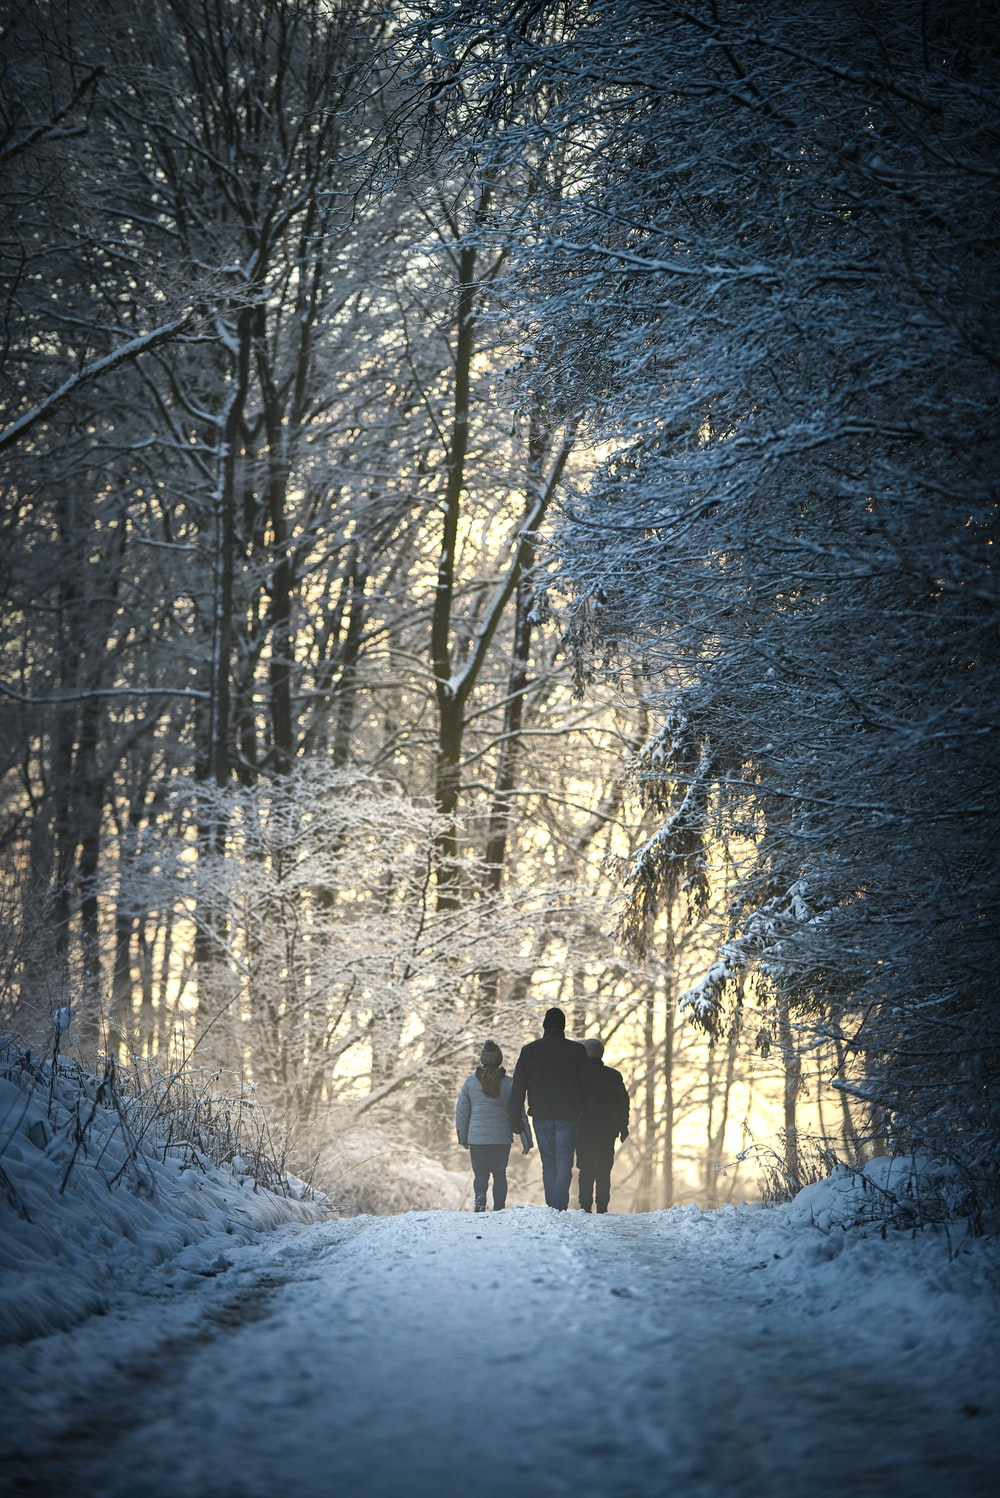 people walking on snow covered ground near trees during daytime